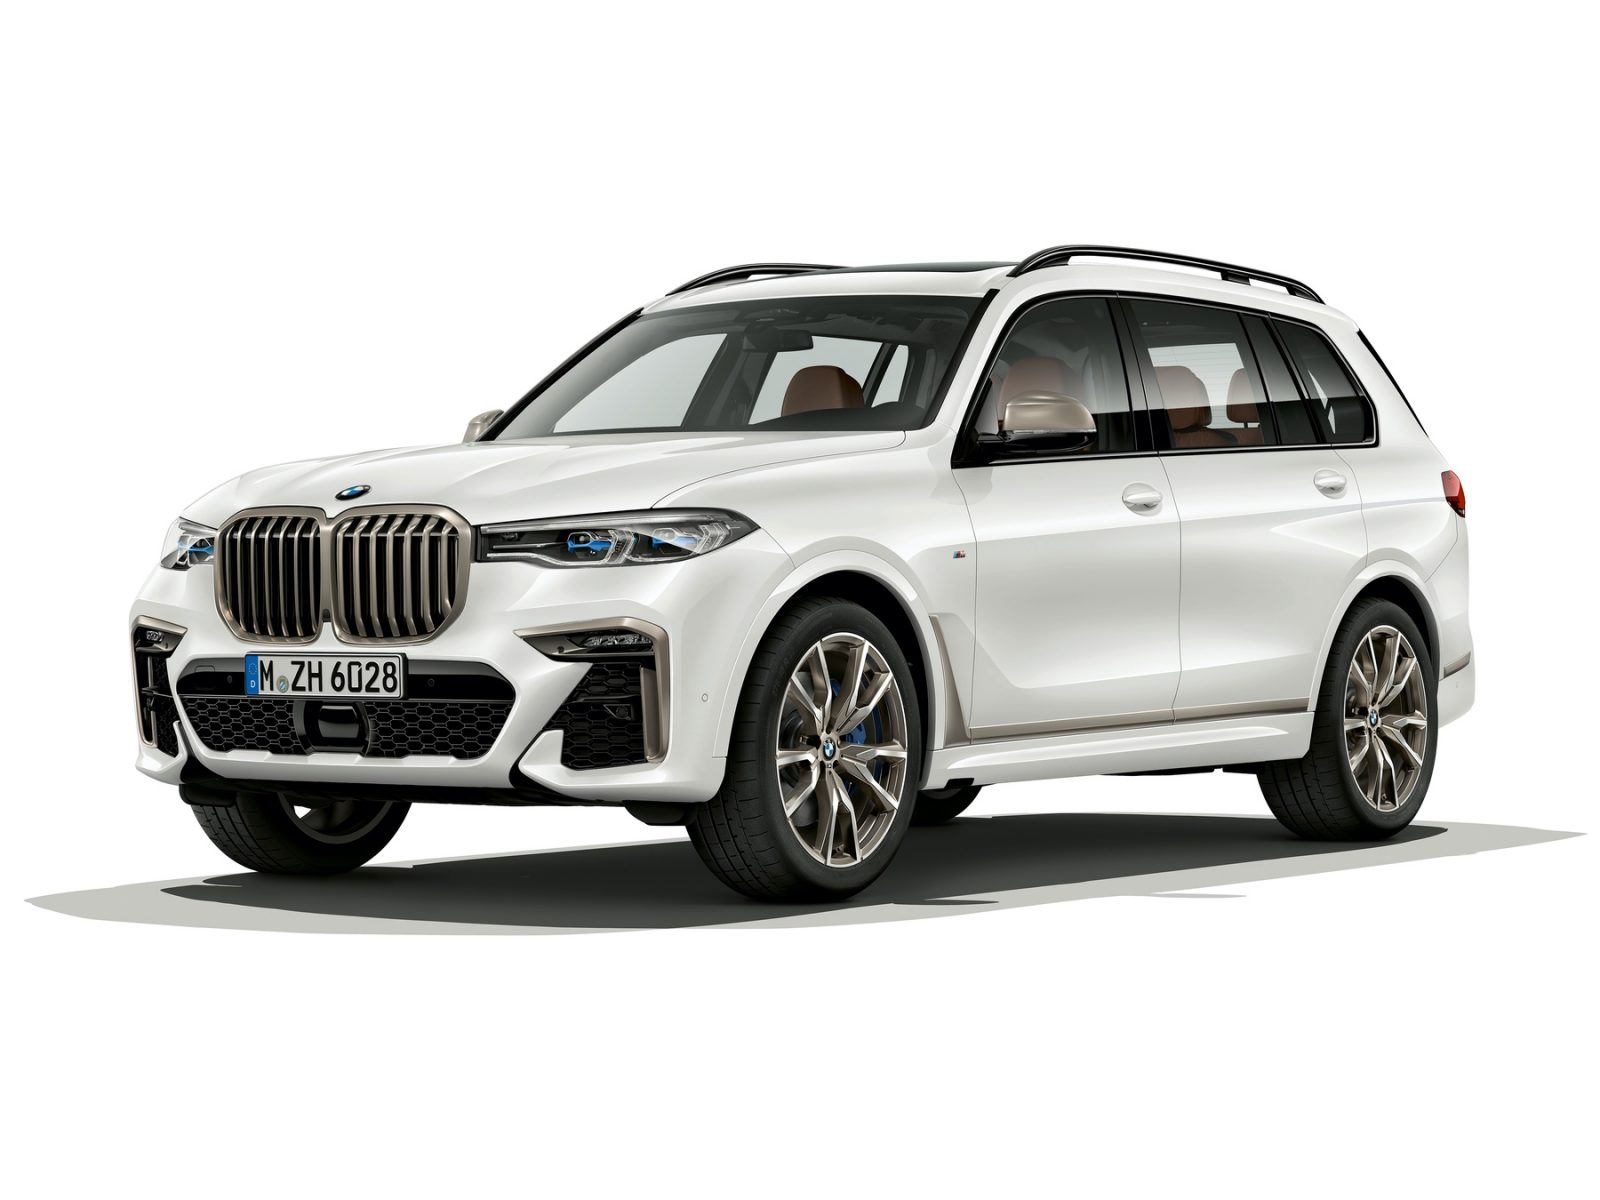 X5 M50i and X7 M50i